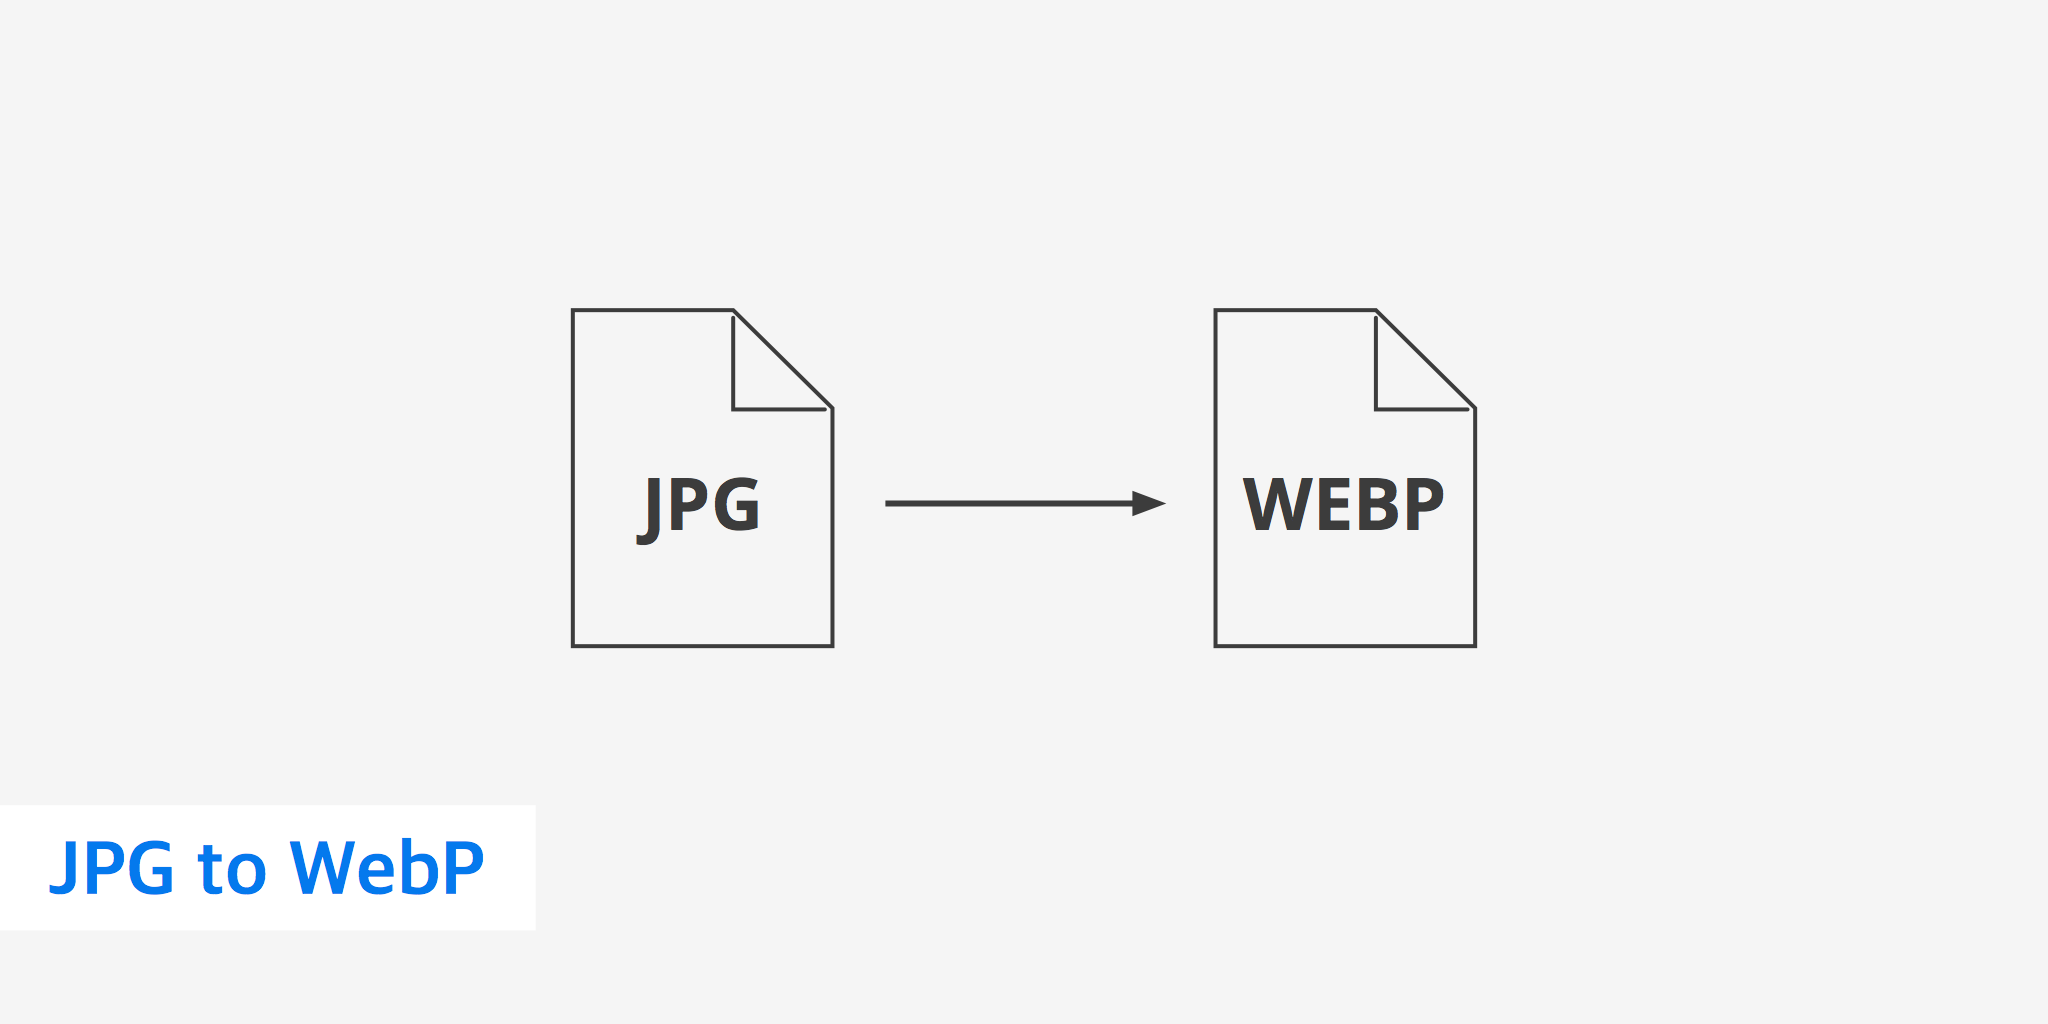 JPG to WebP - Comparing Compression Sizes